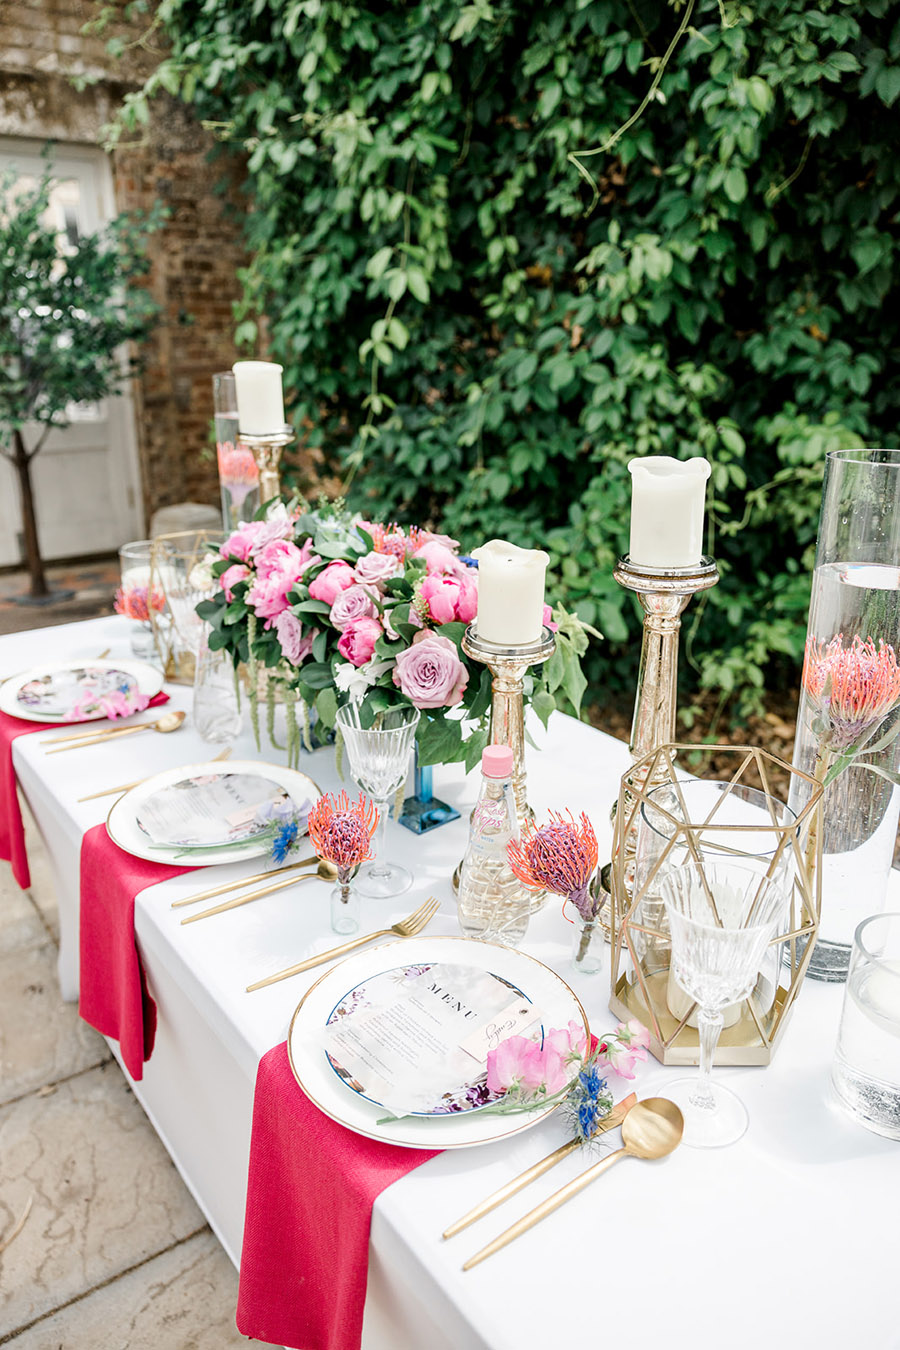 Modern intimate wedding styling inspiration from Slindon House, image credit Kelsie Scully (16)